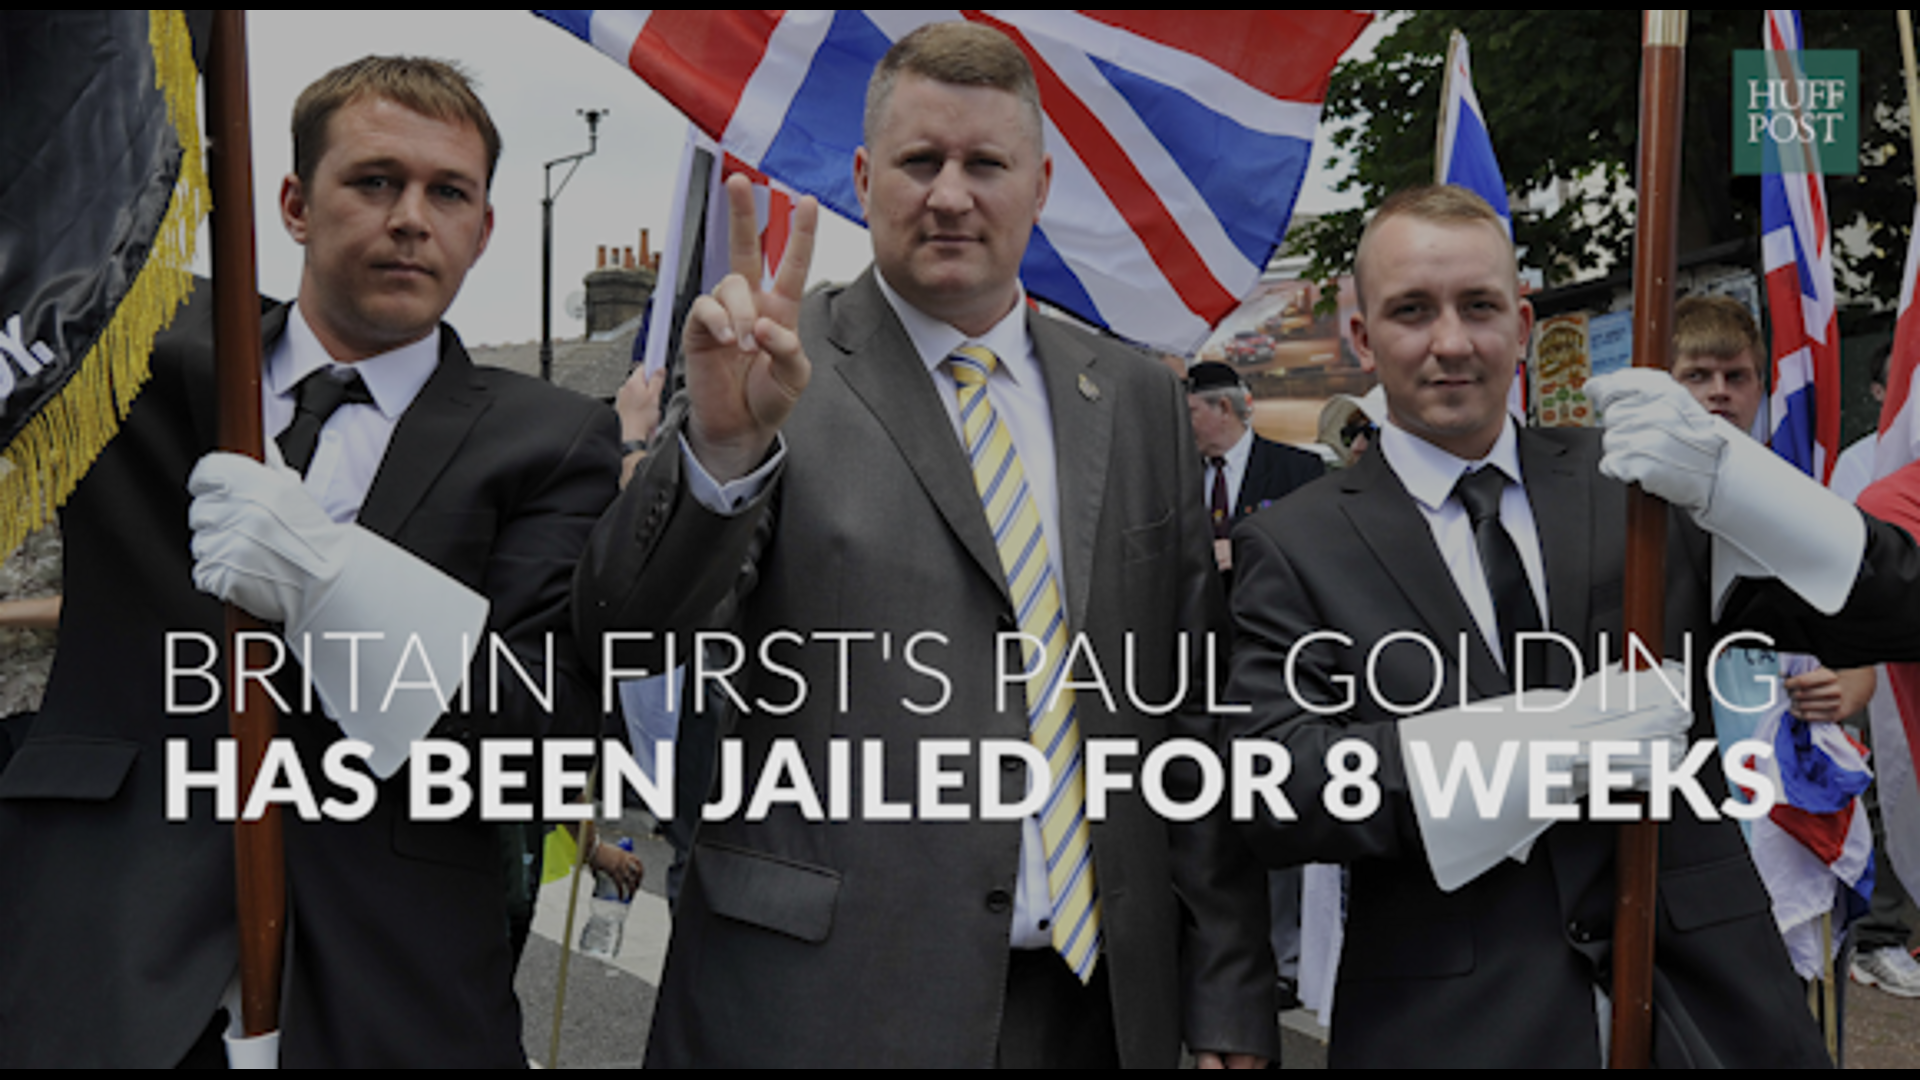 Britain First's Paul Golding Jailed For 8 Weeks For Breaching High Court Injunction